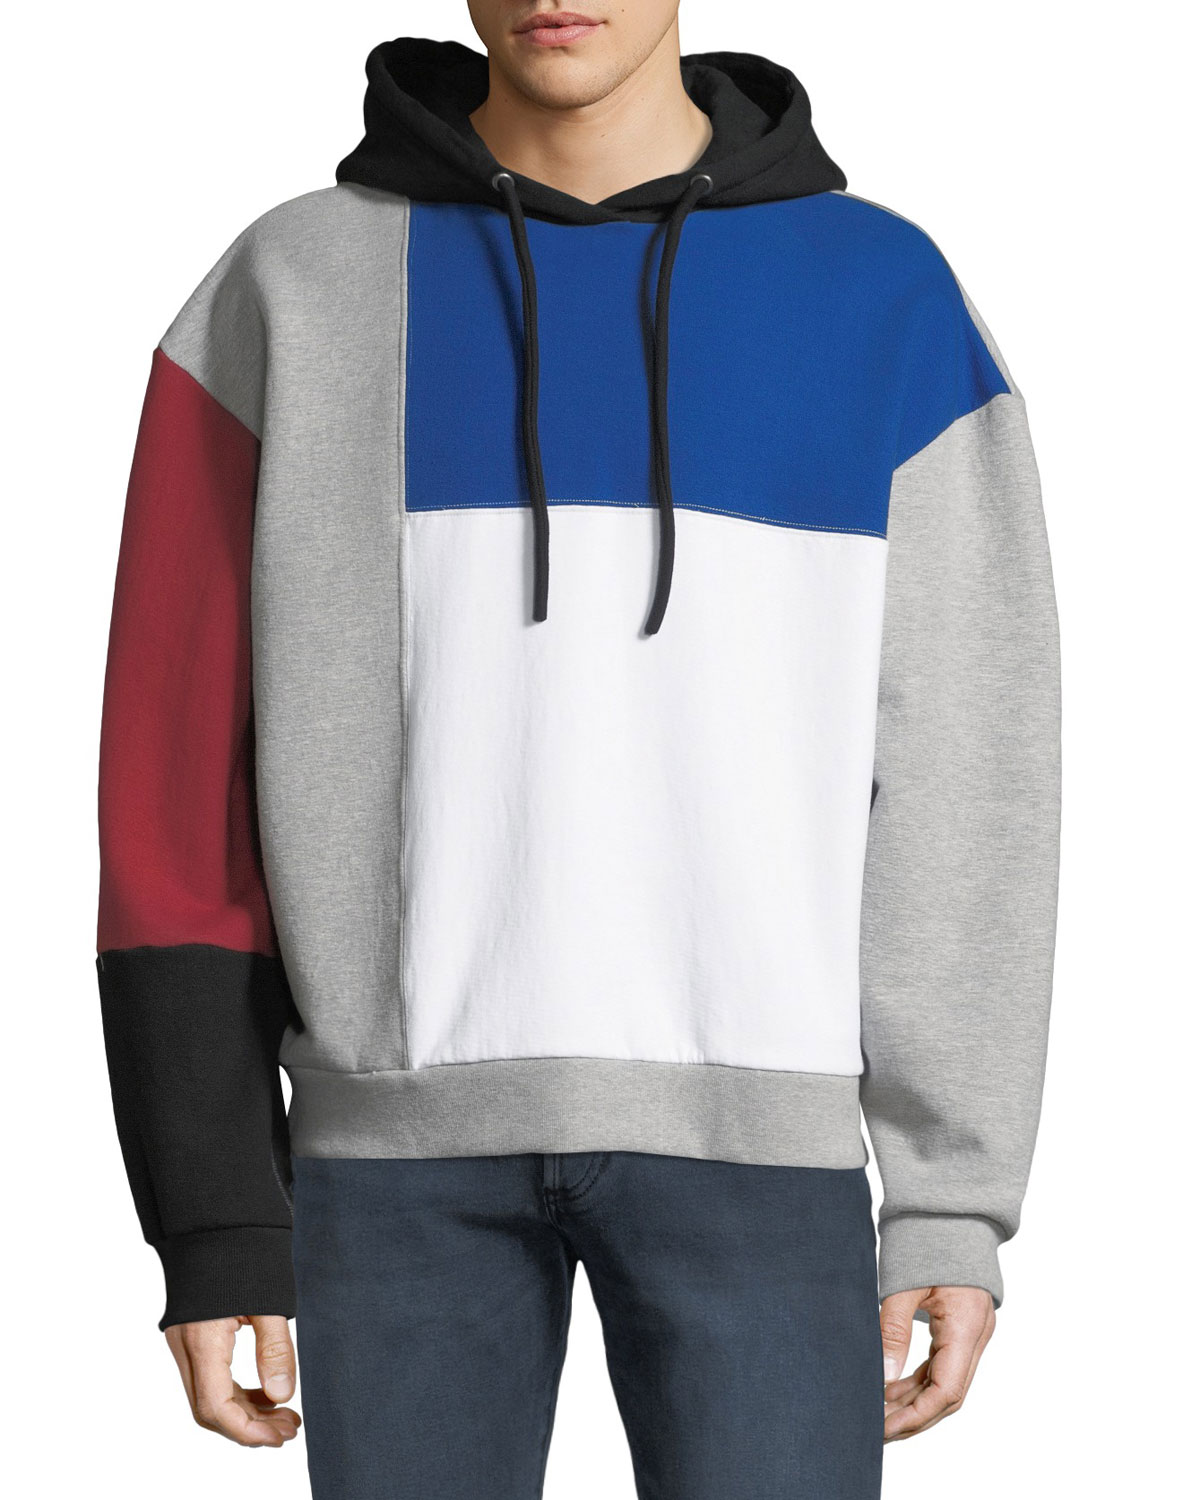 Men's Pieced Hoodie Sweatshirt